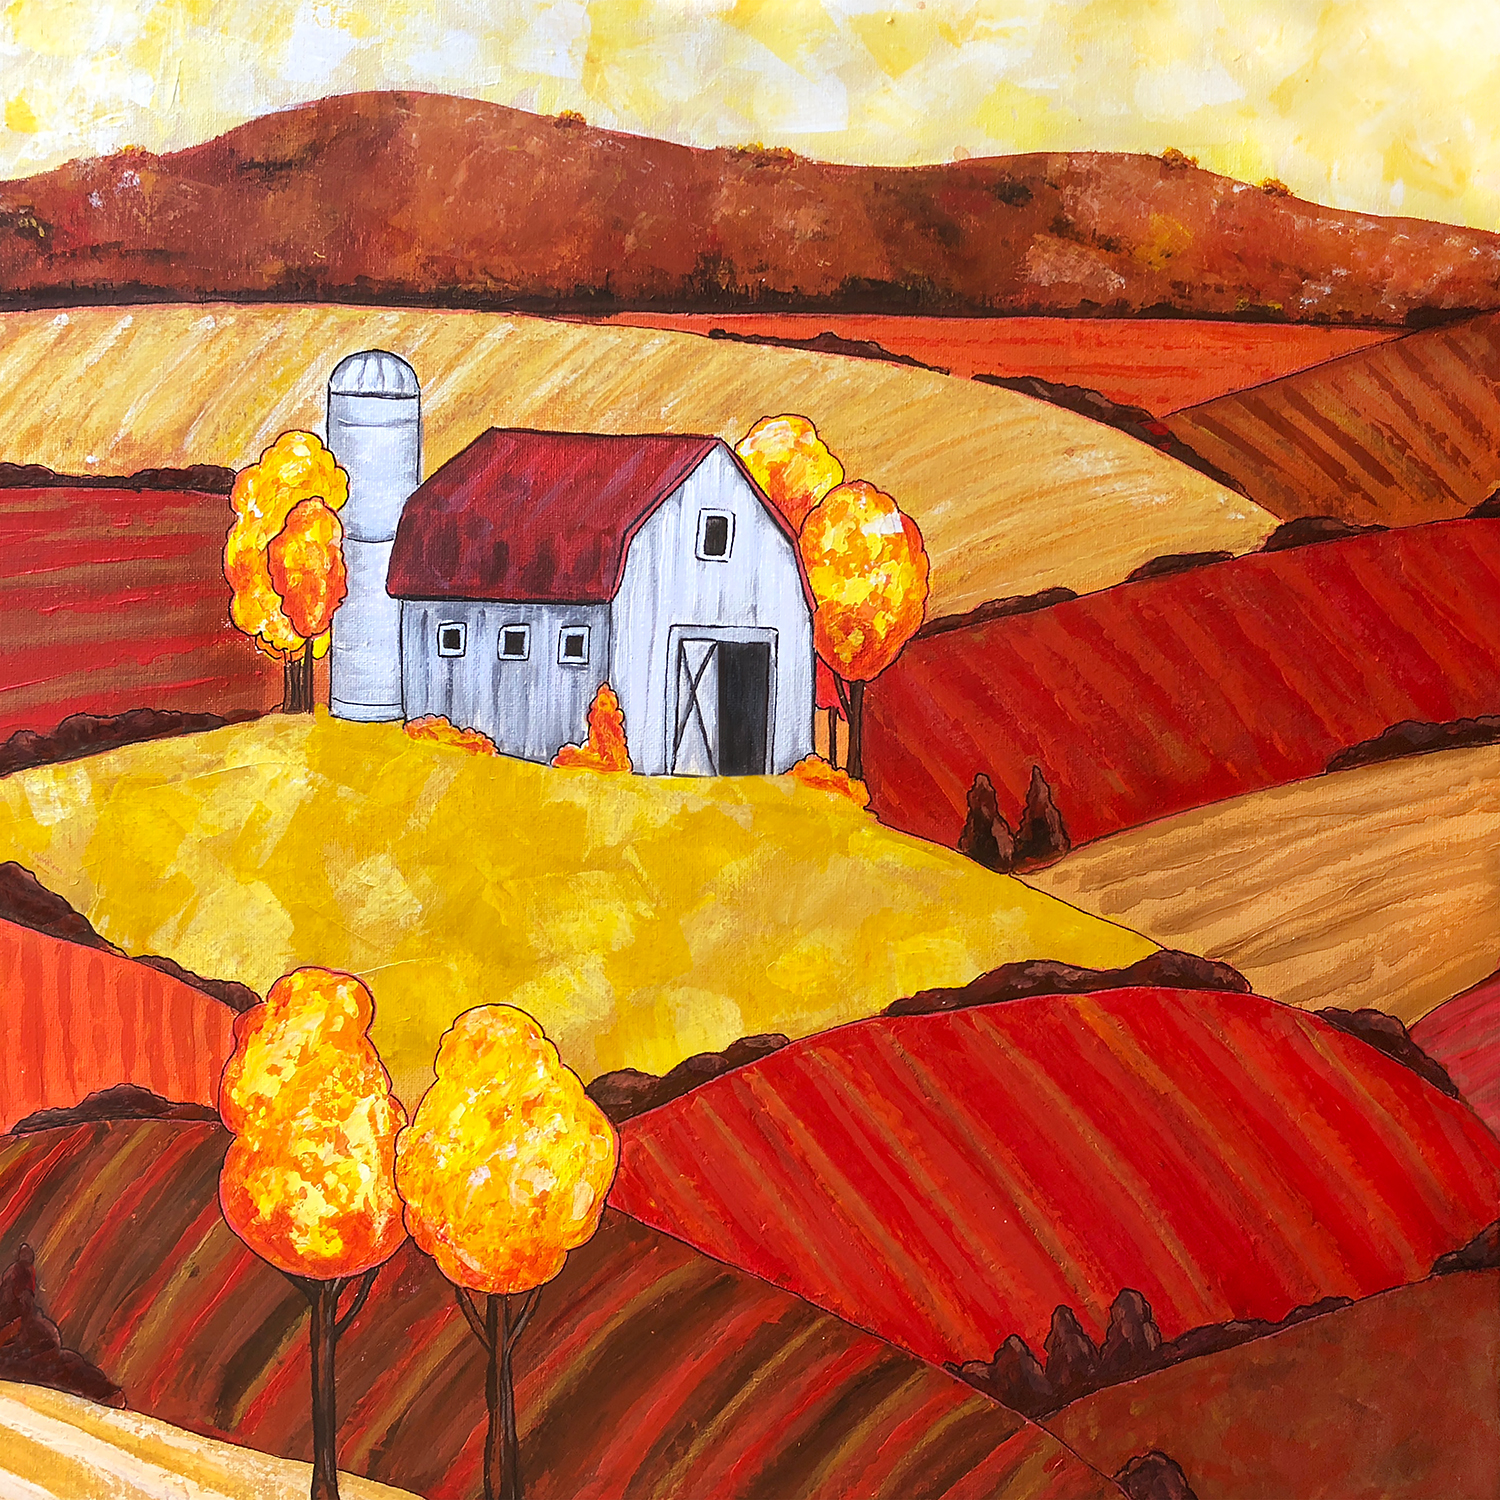 Painting of a barn on a hill